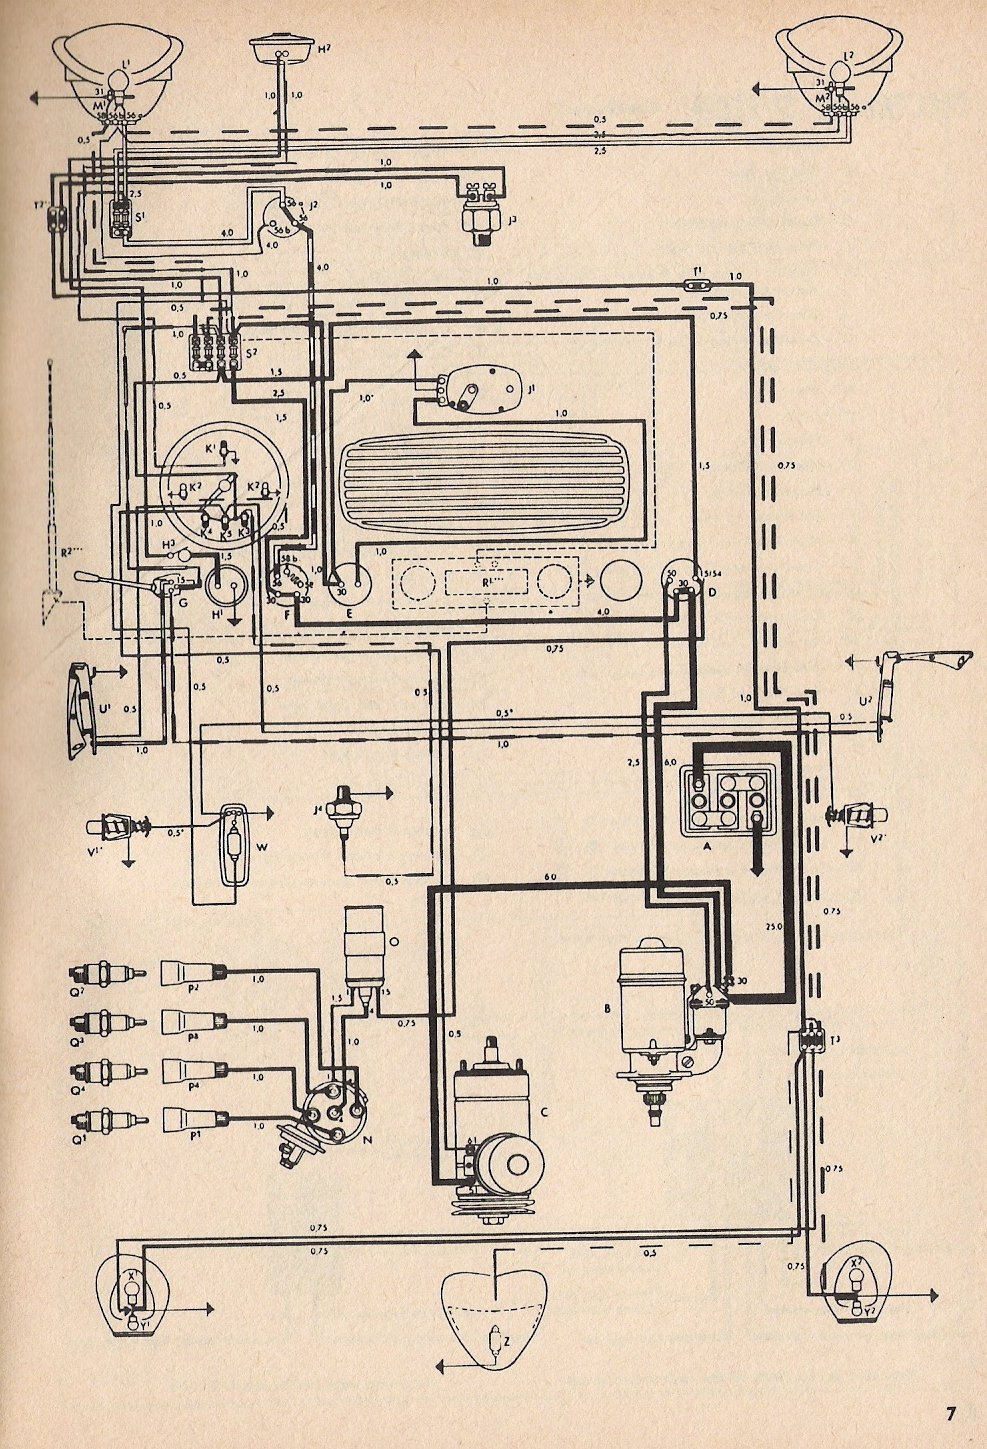 bug_54 vw wiring harness diagram cj7 wiring harness diagram \u2022 wiring Wiring Harness Diagram at gsmx.co